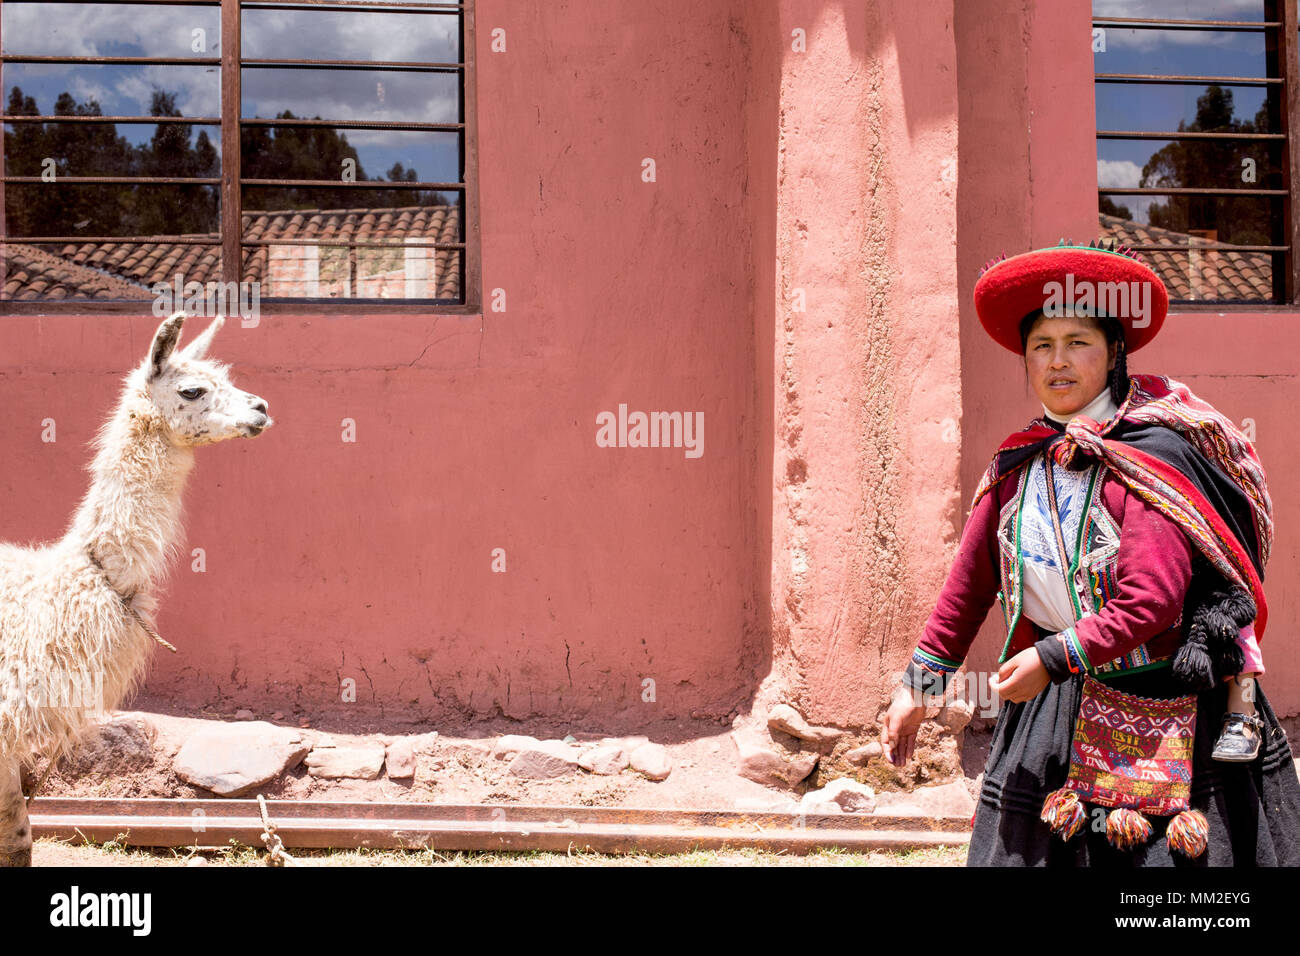 Images of Peru and its peoples. Portrait and Landscape - Stock Image